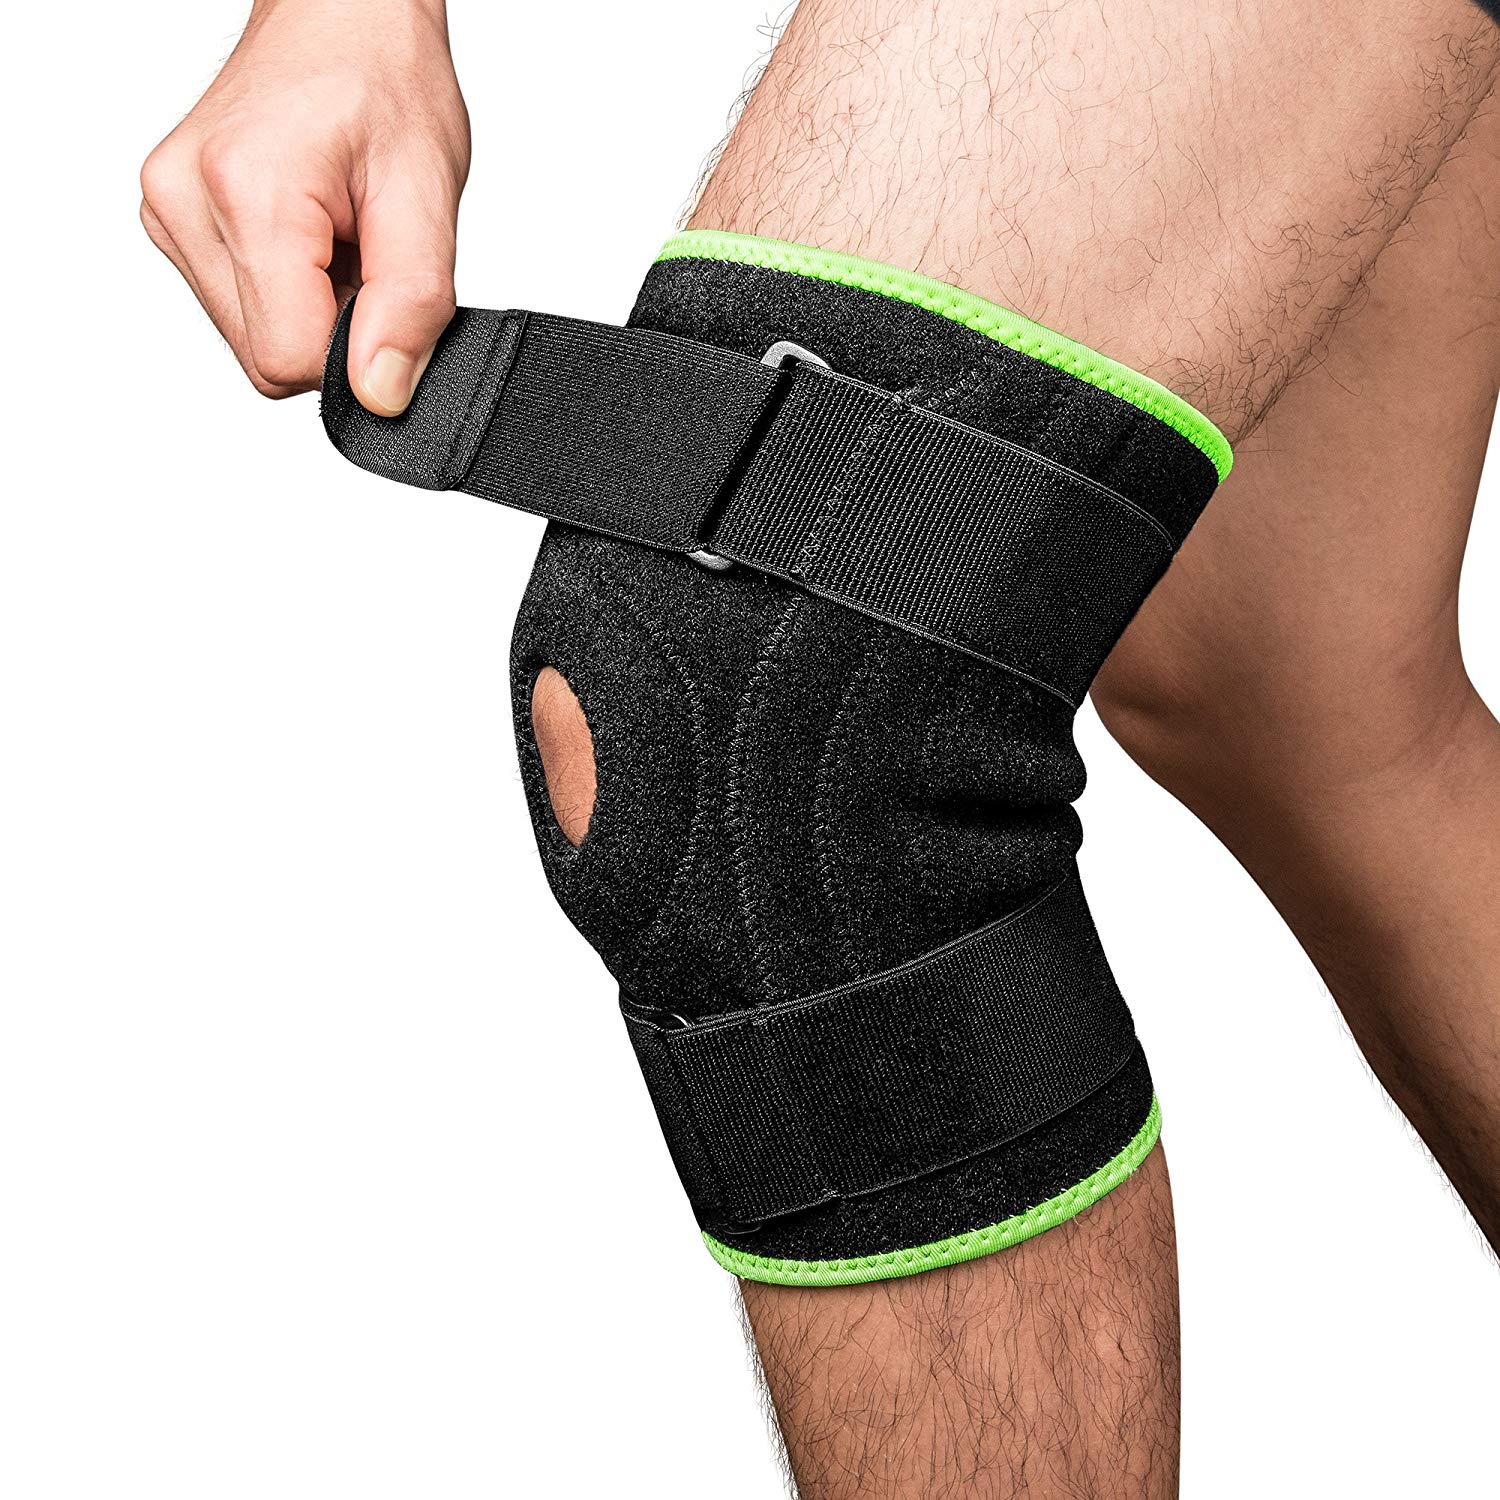 5cb6b20e2c Get Quotations · Knee Brace Support Protector, iSPECLE Open-Patella  Stabilizer Knee Brace for Arthritis, ACL